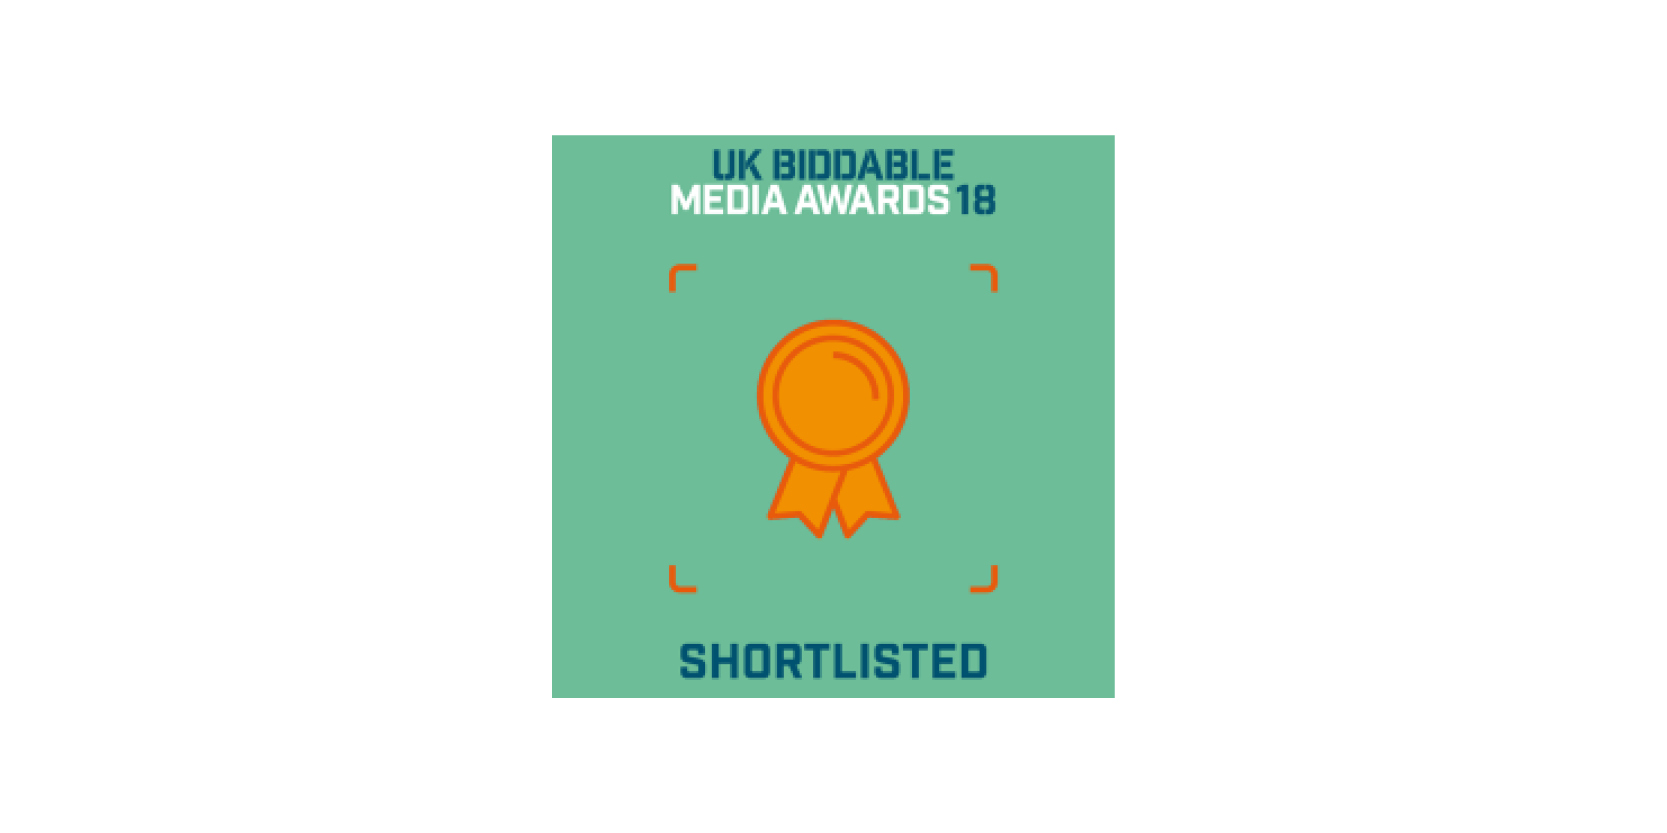 UK Biddable Media Awards 2018 Finalist